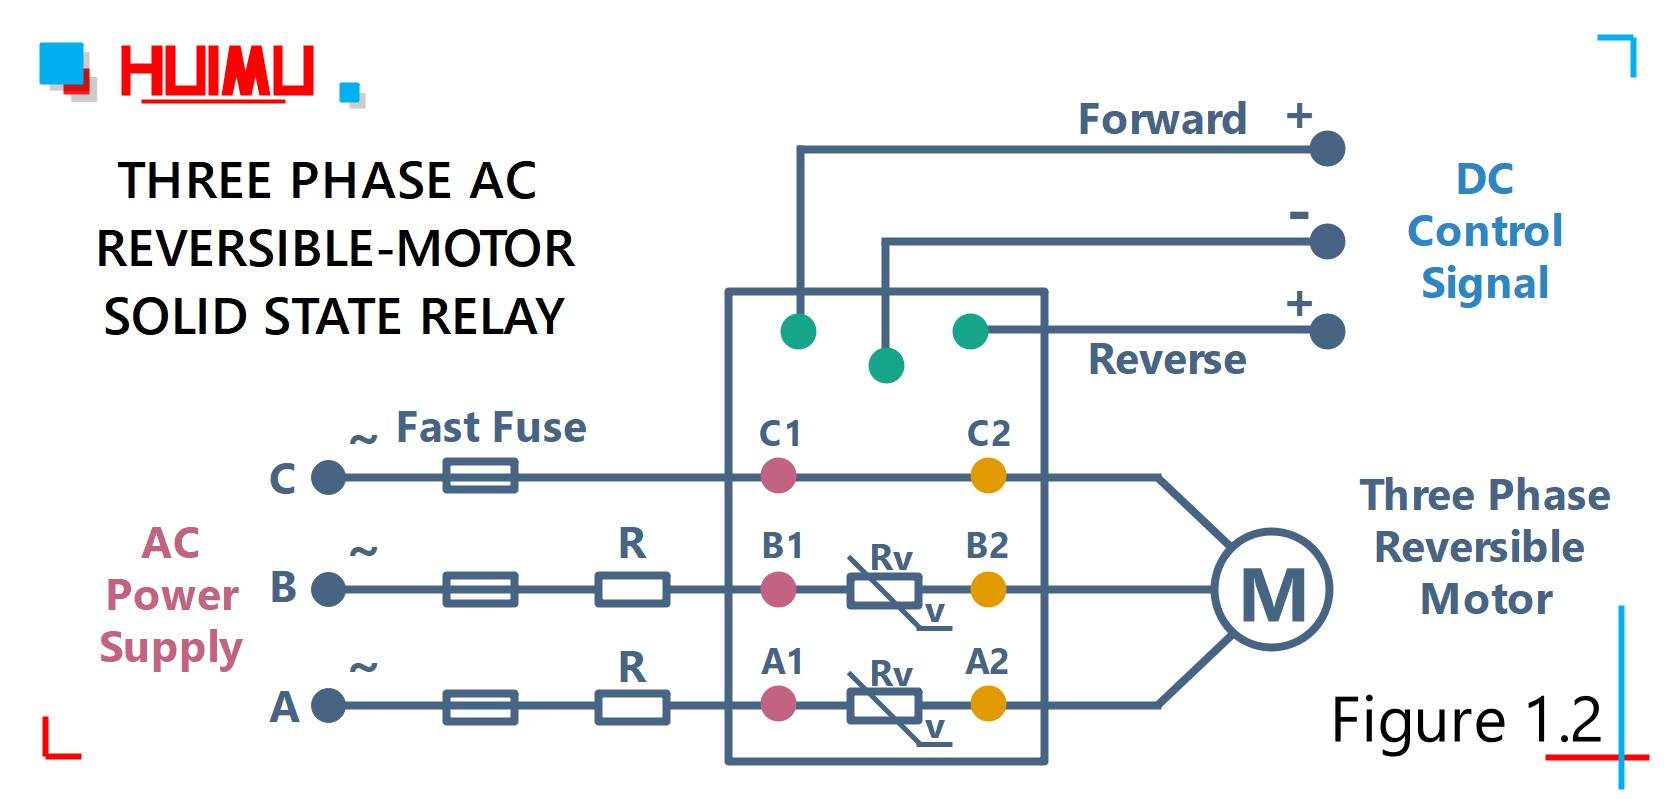 How to wire MGR mager three phase AC reversing-motor (forward-reverse) solid state relay? More detail via www.@huimultd.com